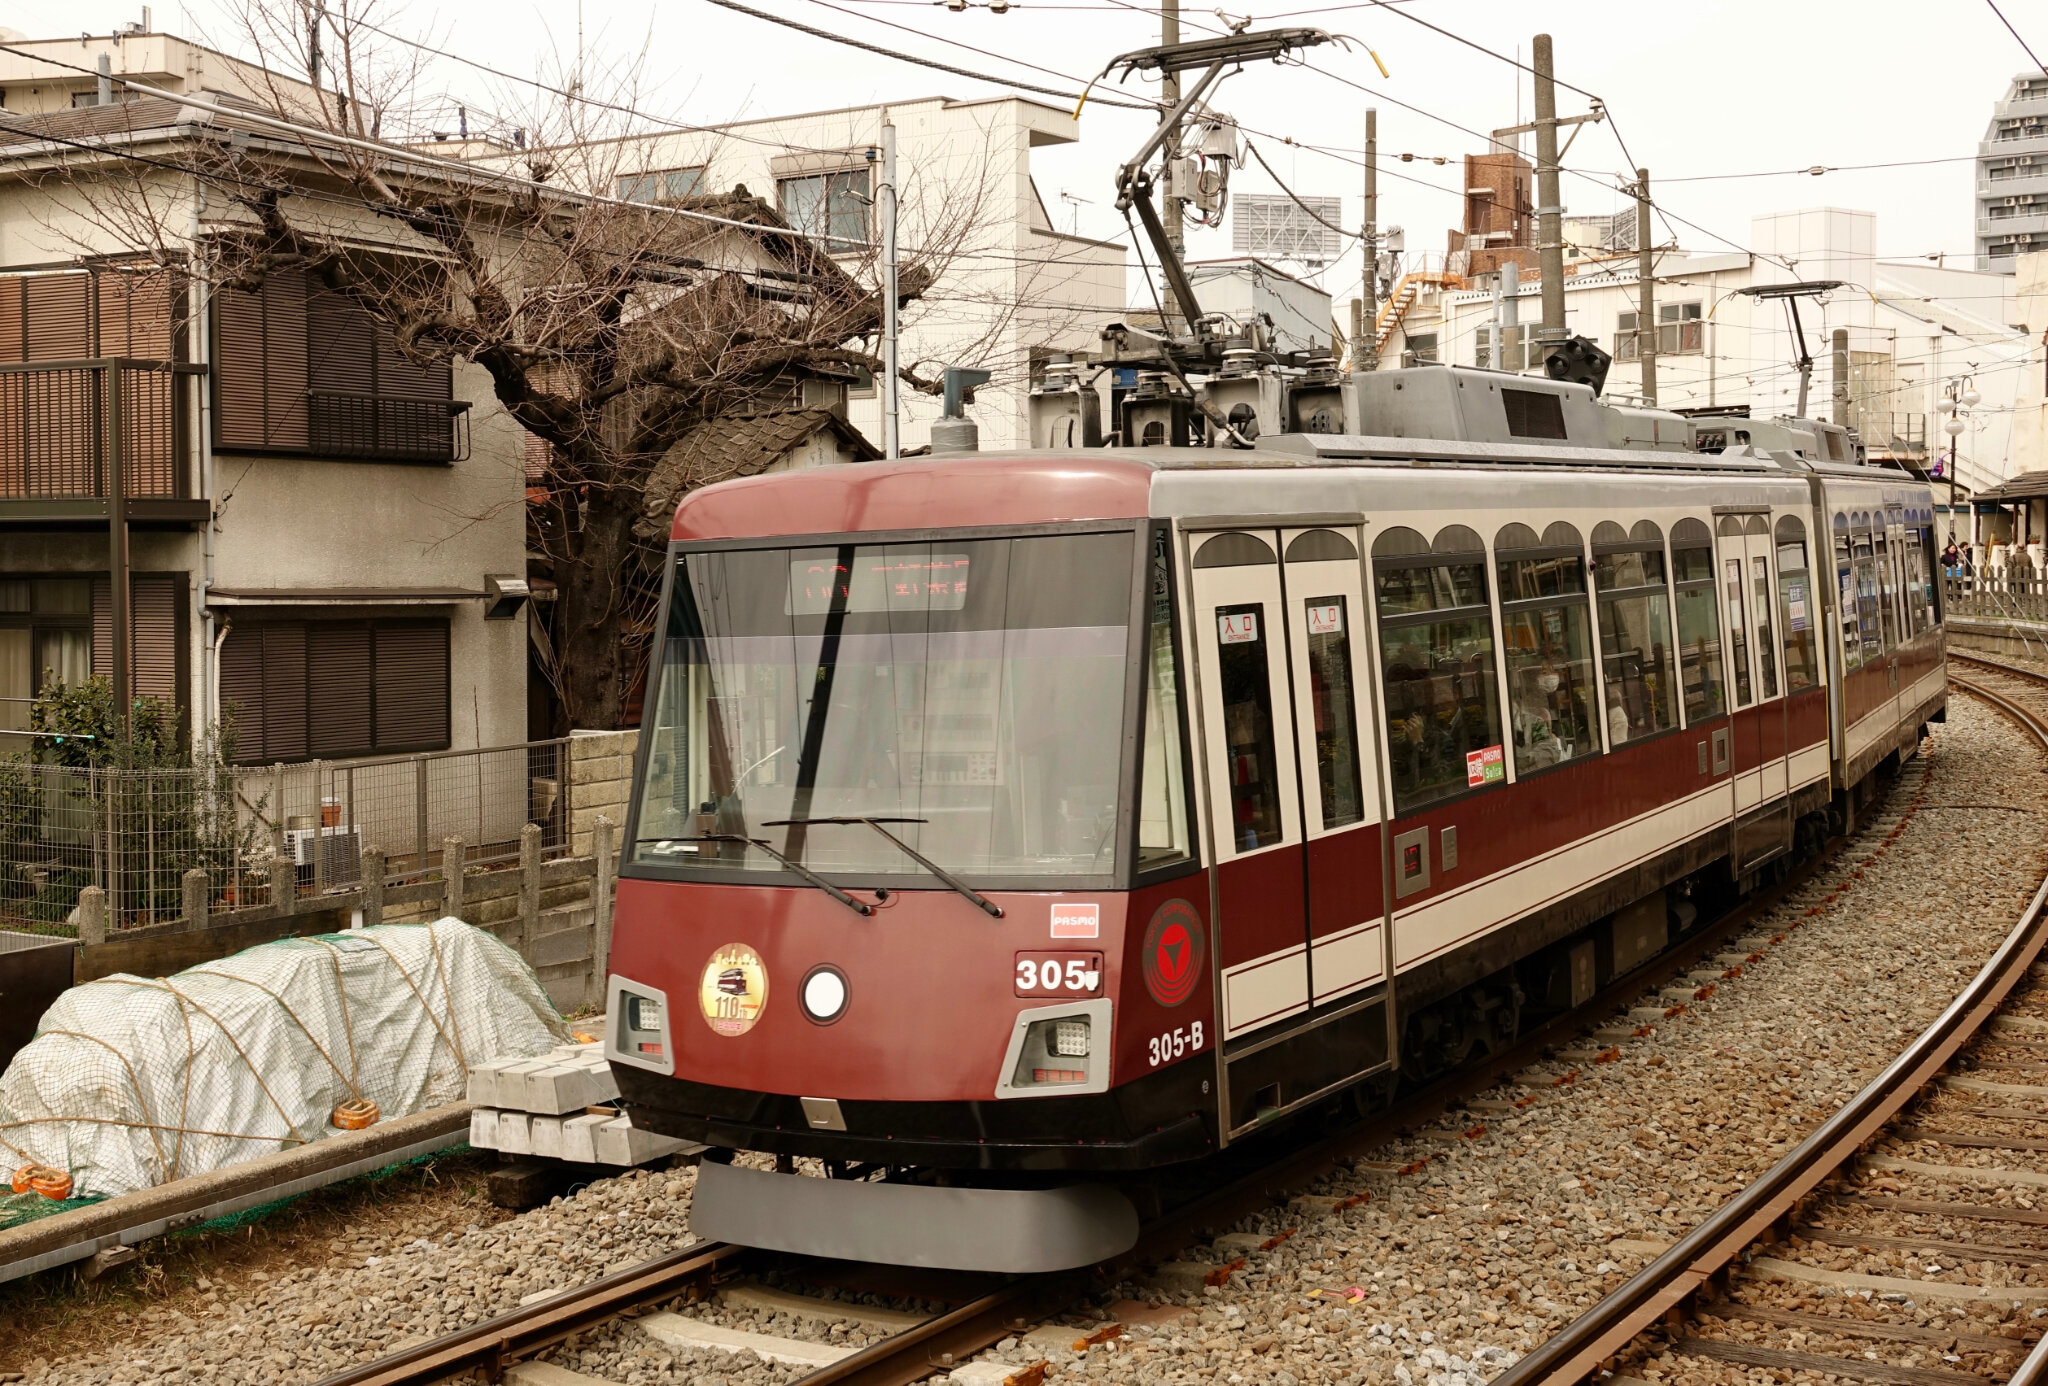 305 '110th anniversary' special marron livery !